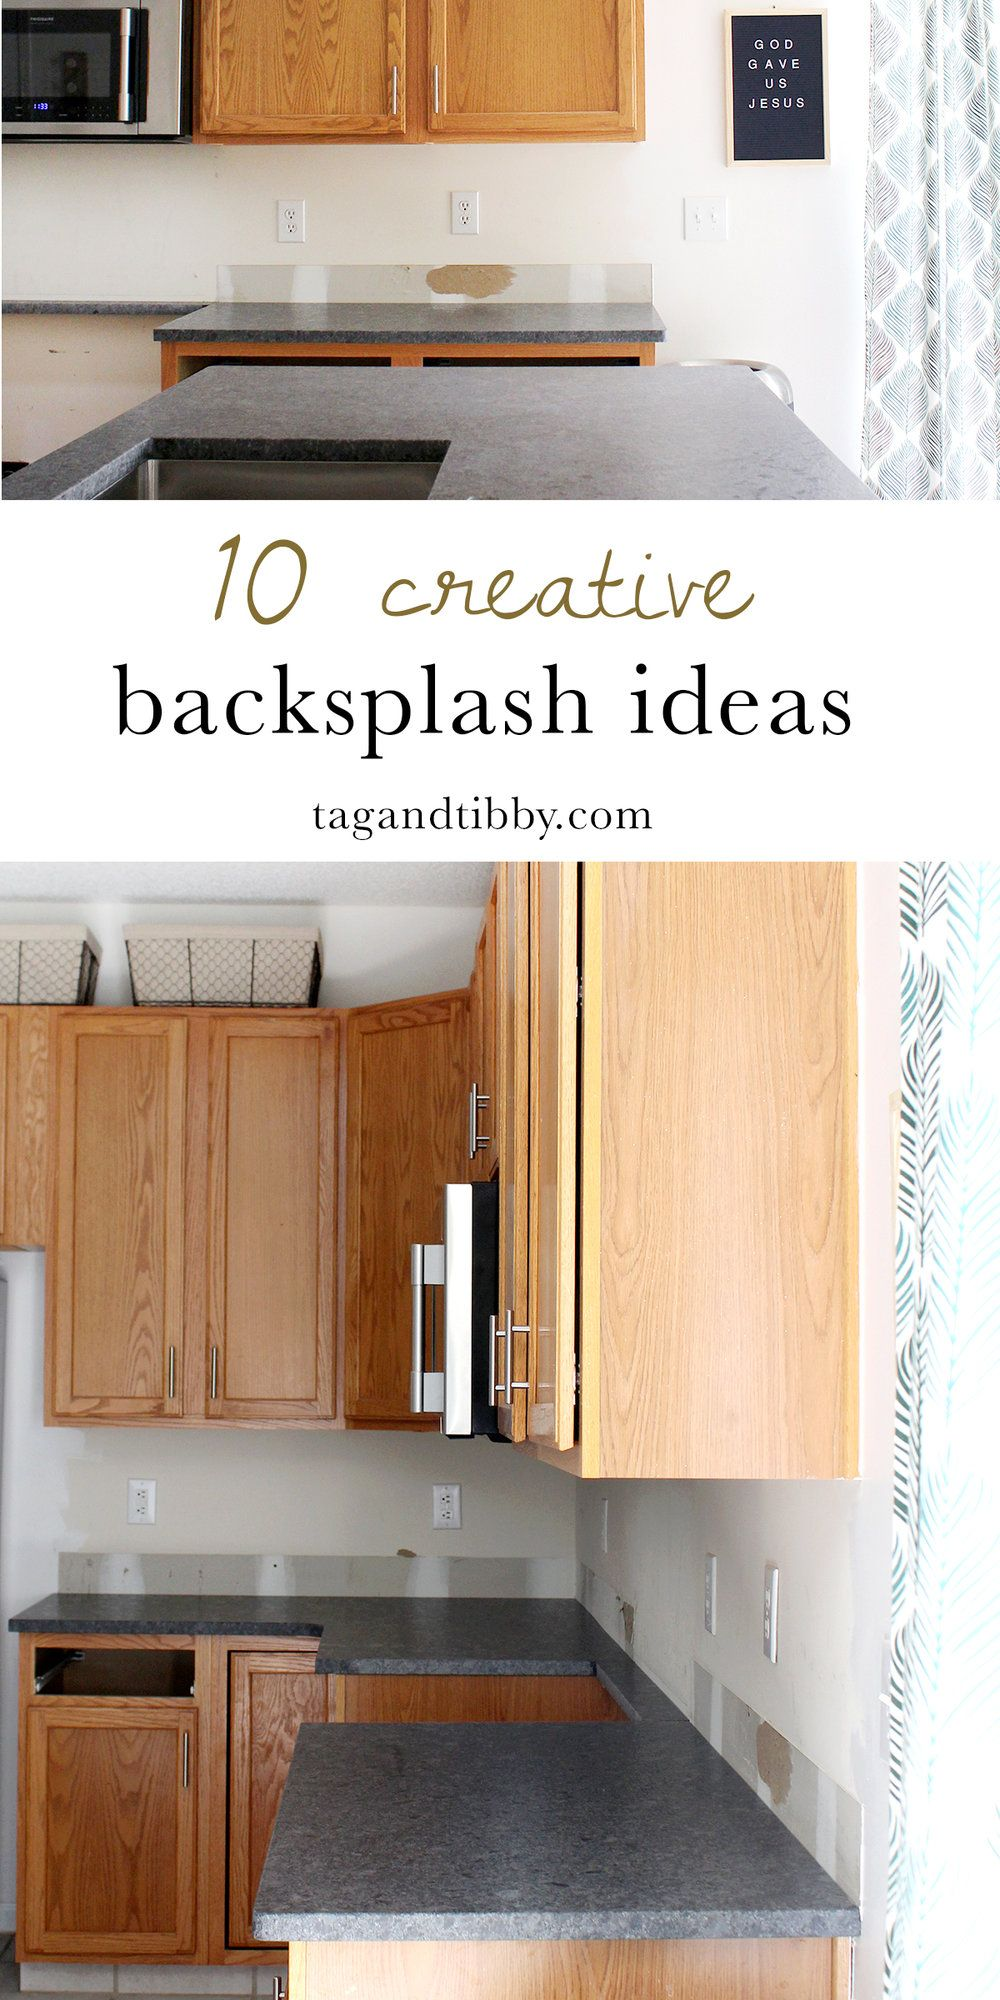 10 unique backsplash ideas for the kitchen from